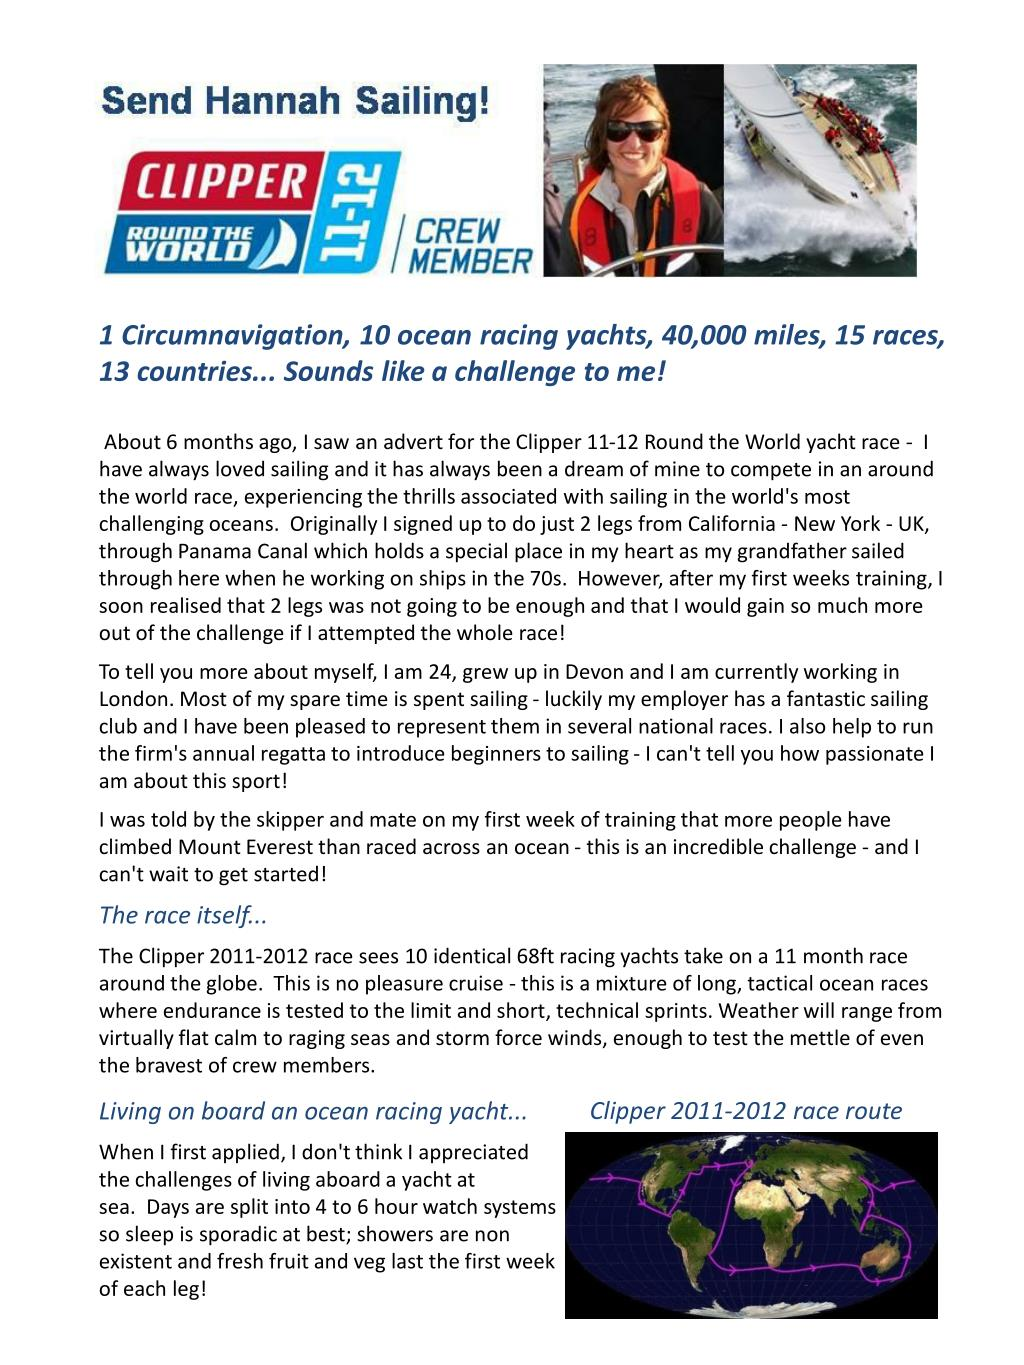 1 Circumnavigation, 10 ocean racing yachts, 40,000 miles, 15 races, 13 countries... Sounds like a challenge to me!